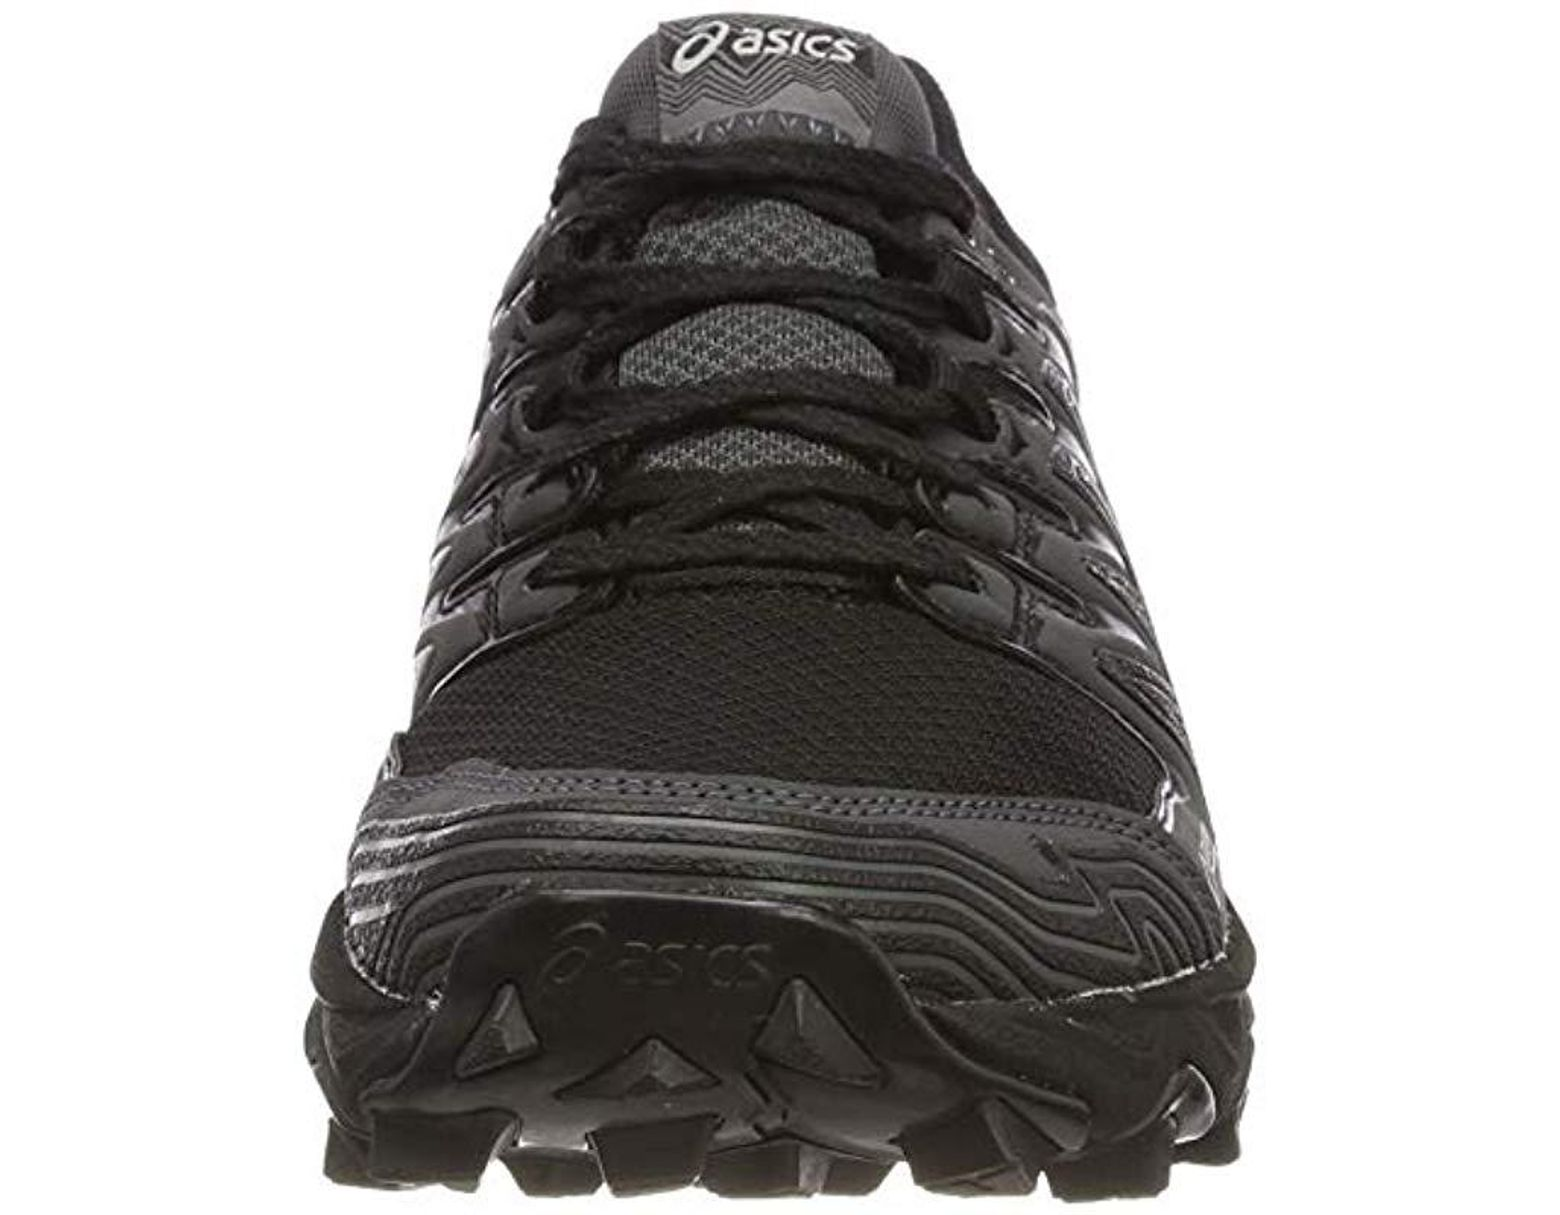 1c6a584a Asics Gel-fujitrabuco 7 G-tx Running Shoes in Black - Save 16% - Lyst